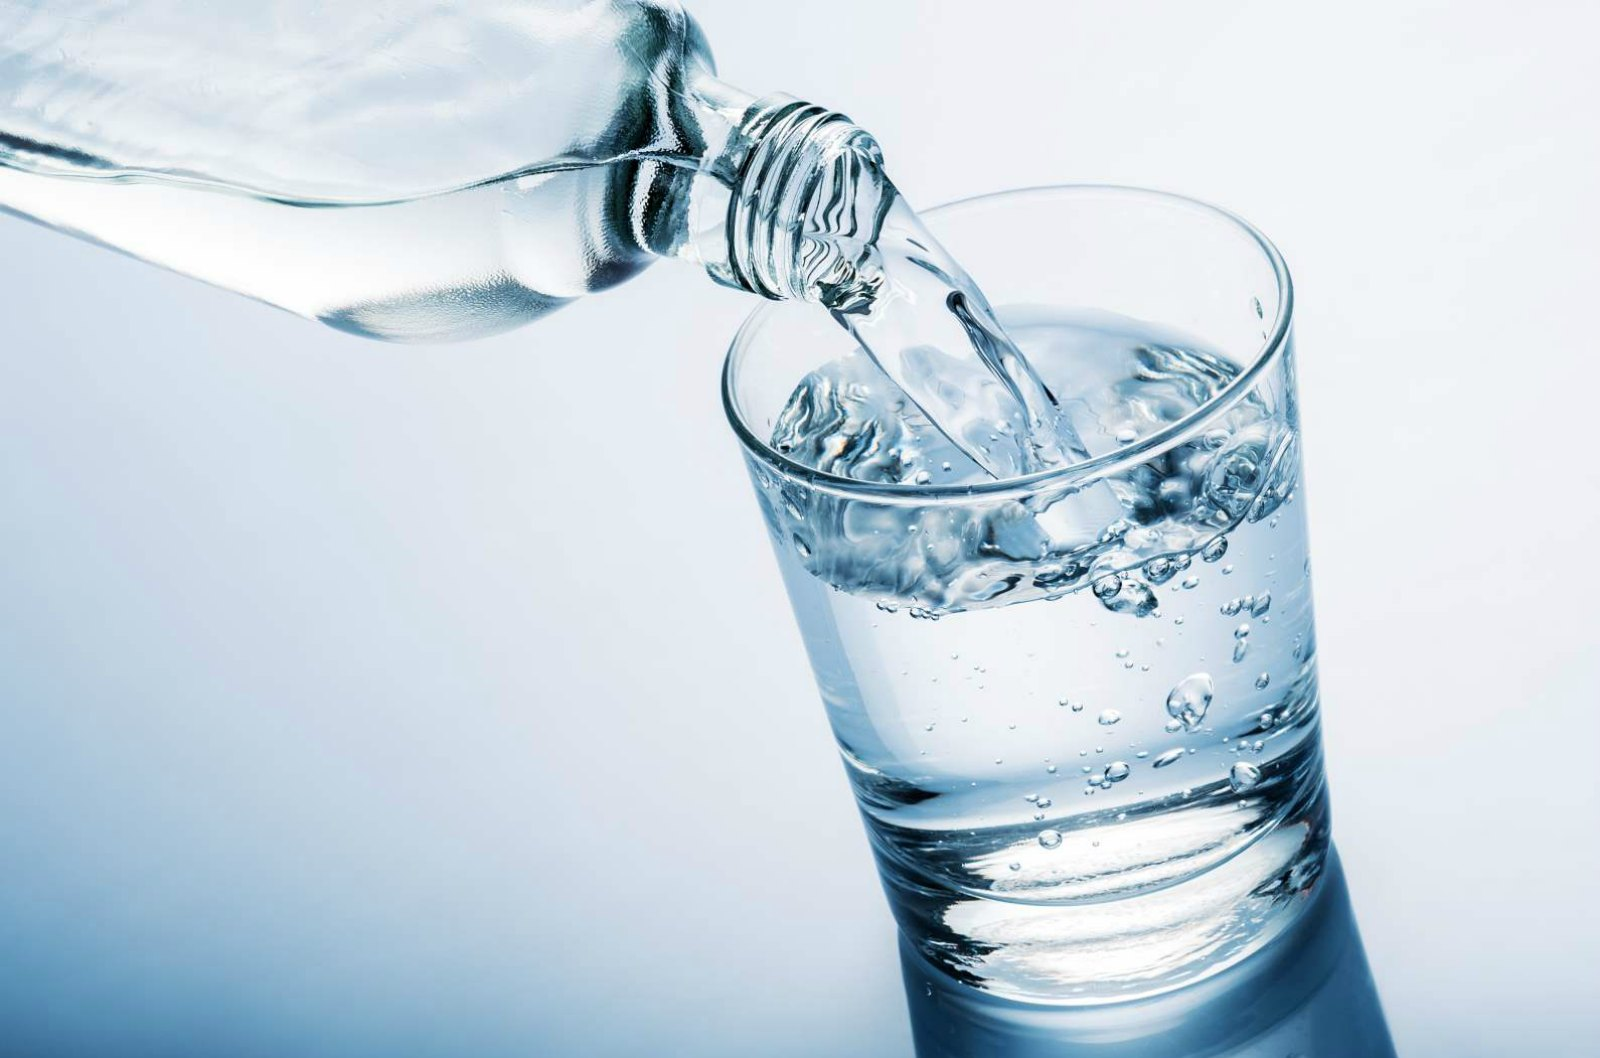 Membrane Helps to Replenish the World's Fresh Drinking Water Supply